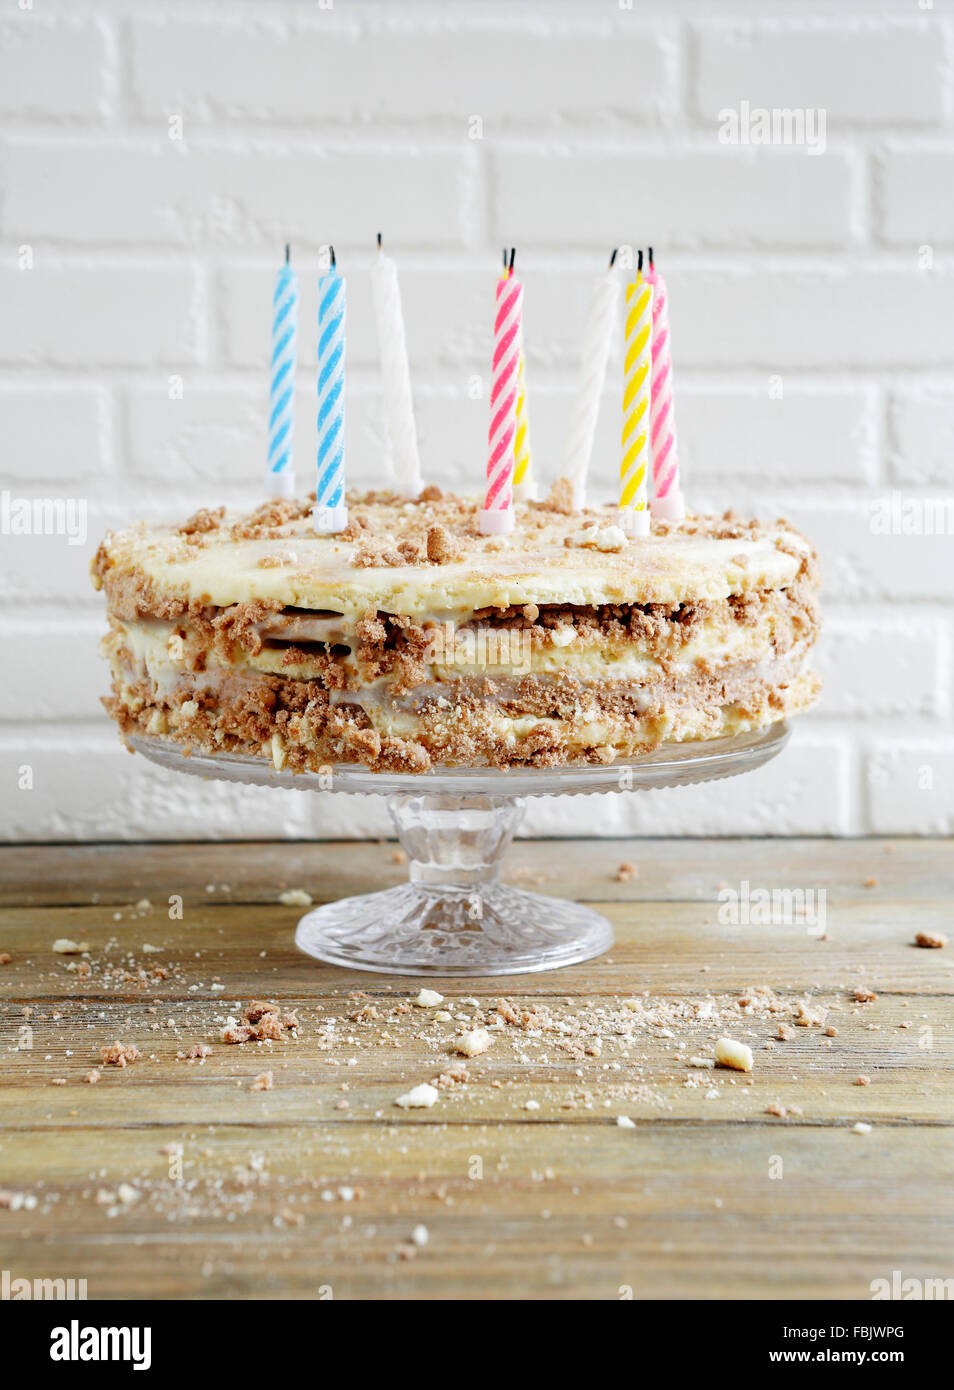 birthday candles on rustic cake, food close-up - Stock Image